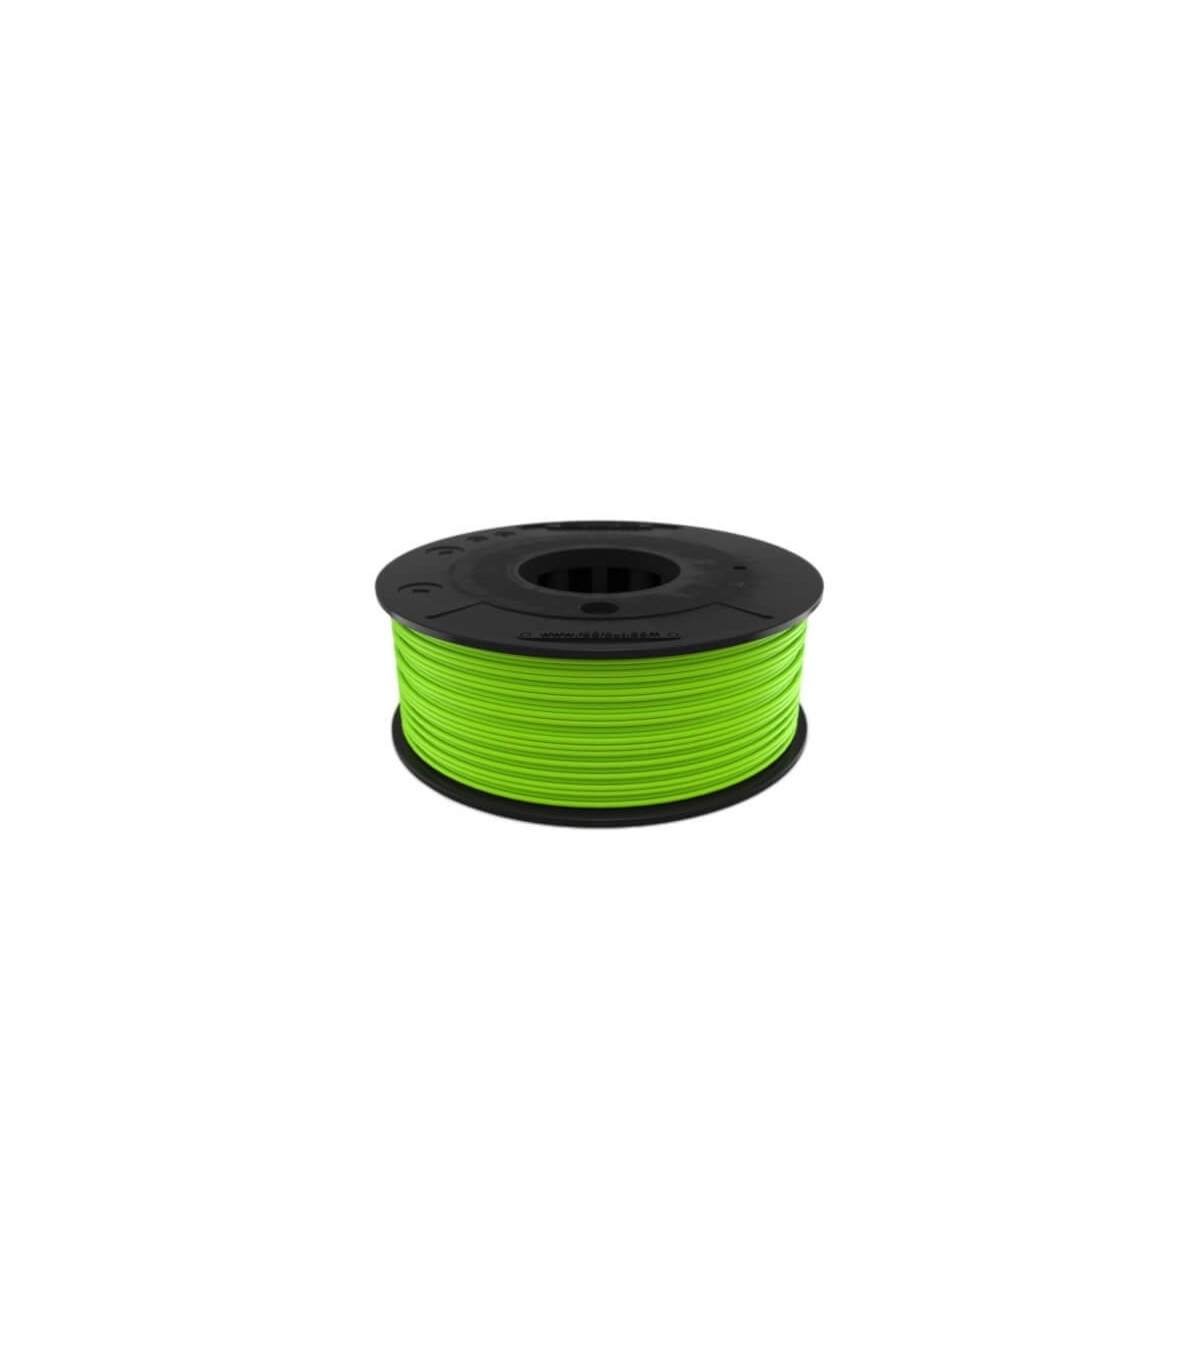 FilaFlex  Green 82A TPE Filament 1.75 mm 250g